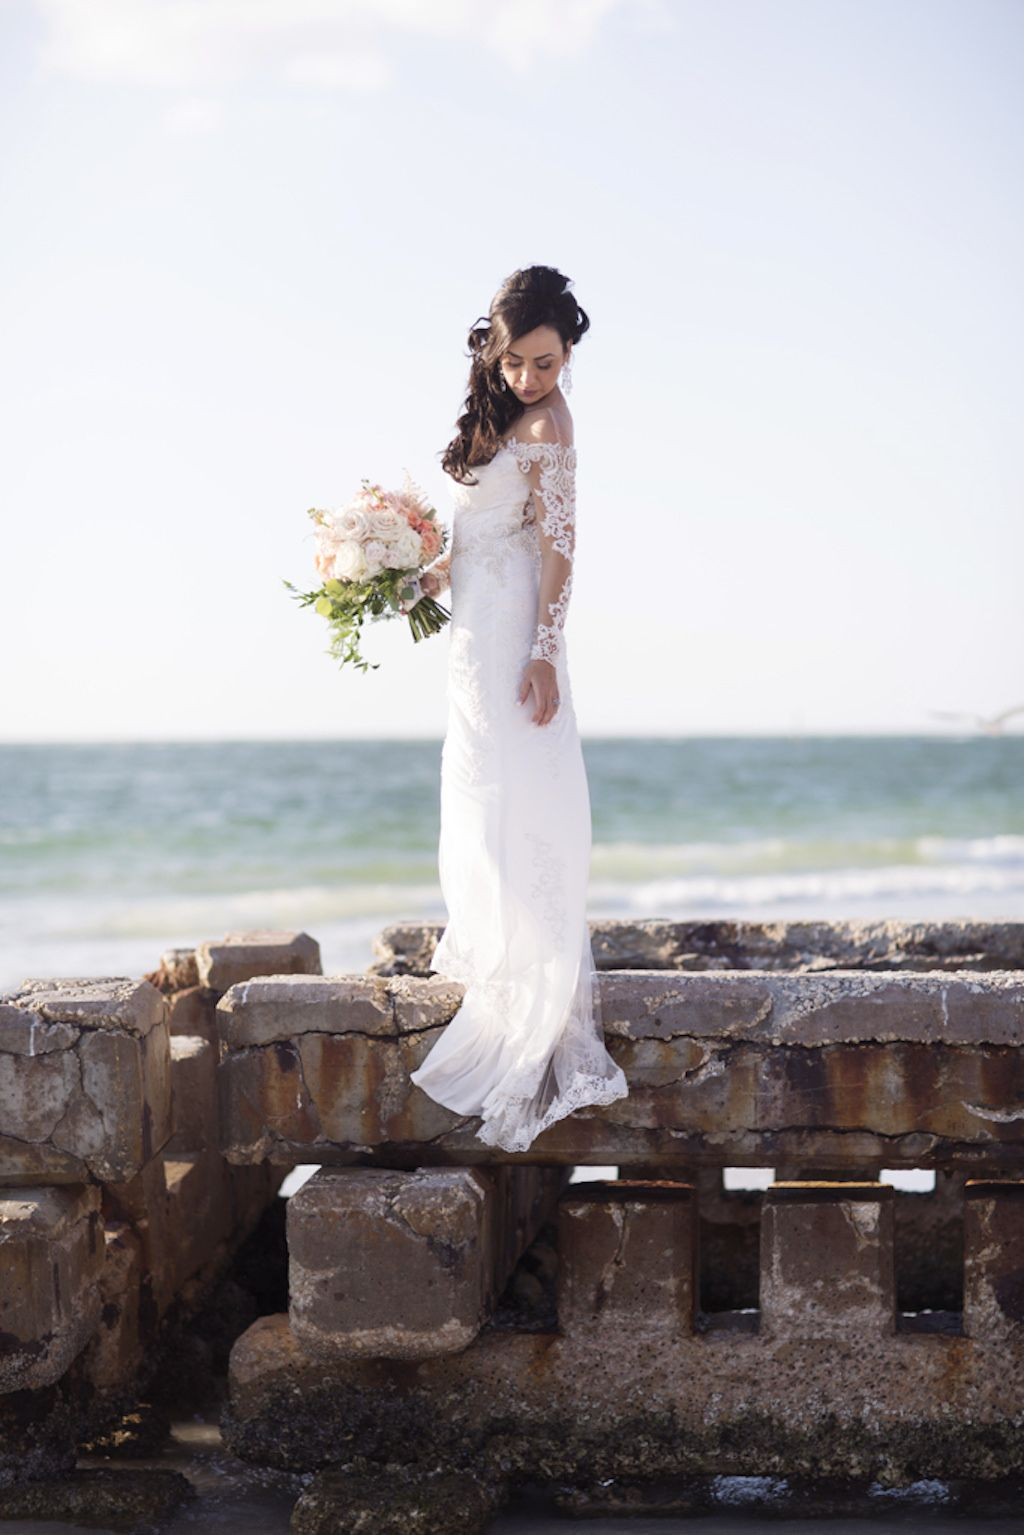 7ced4c0e89 Outdoor Beach Bridal Portrait, Bride in V Neck Off The Shoulder Lace Long  Sleeve Brides by Demetrios Dress with Pink and White Floral Bouquet with  Greenery ...